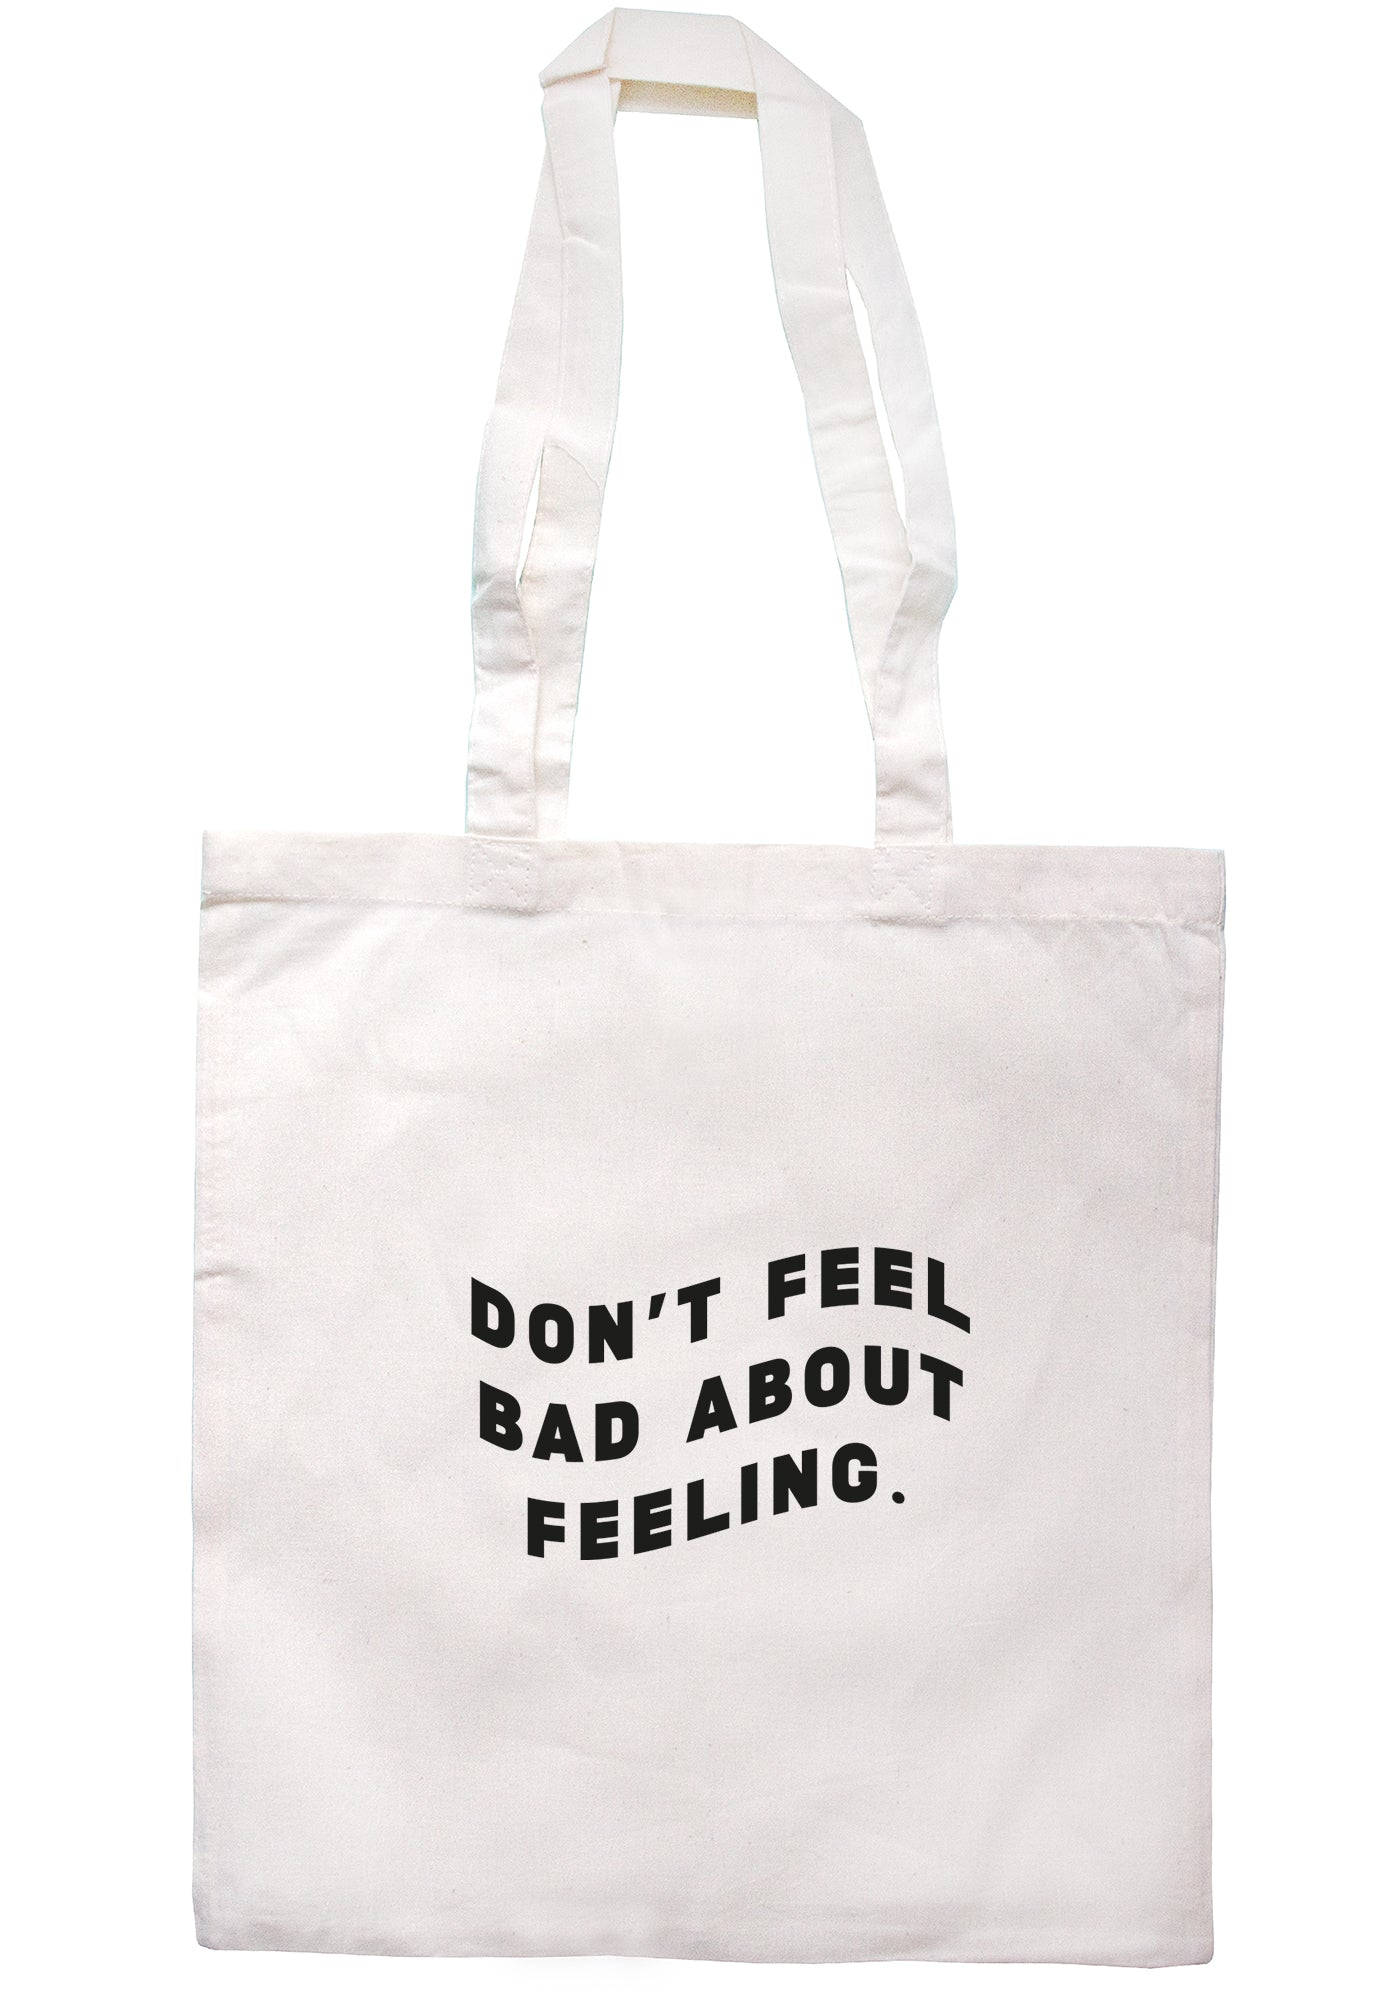 Don't Feel Bad About Feeling Tote Bag S1177 - Illustrated Identity Ltd.